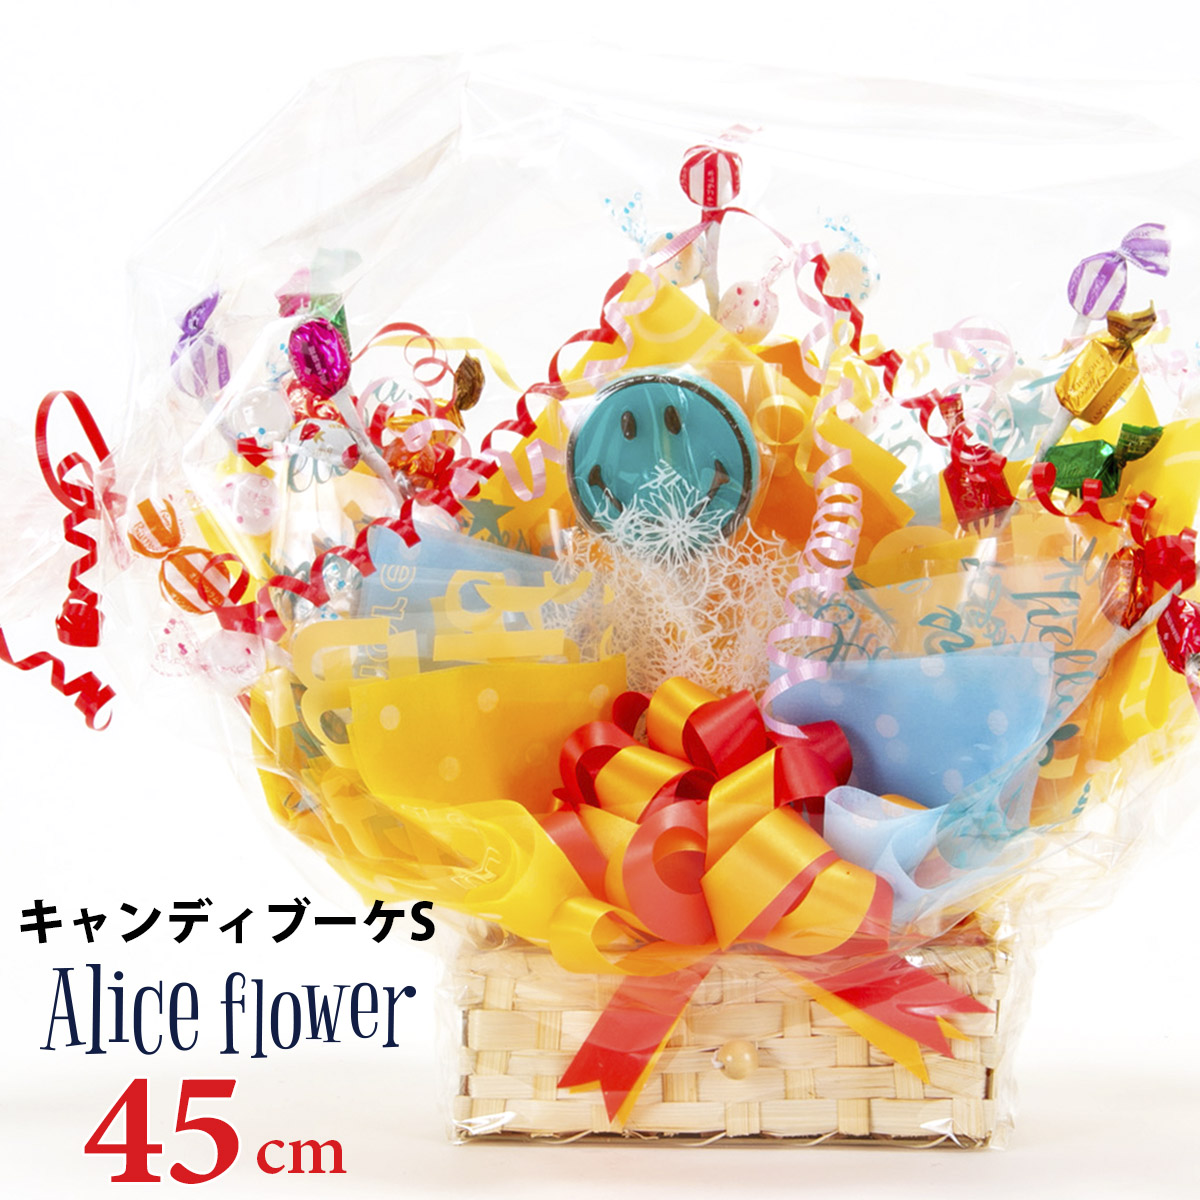 Candy Bouquet Version Happy Surprise S Size Women Birthday Gift Suites Arranged Welcome Retirement Marriage Memorial Day